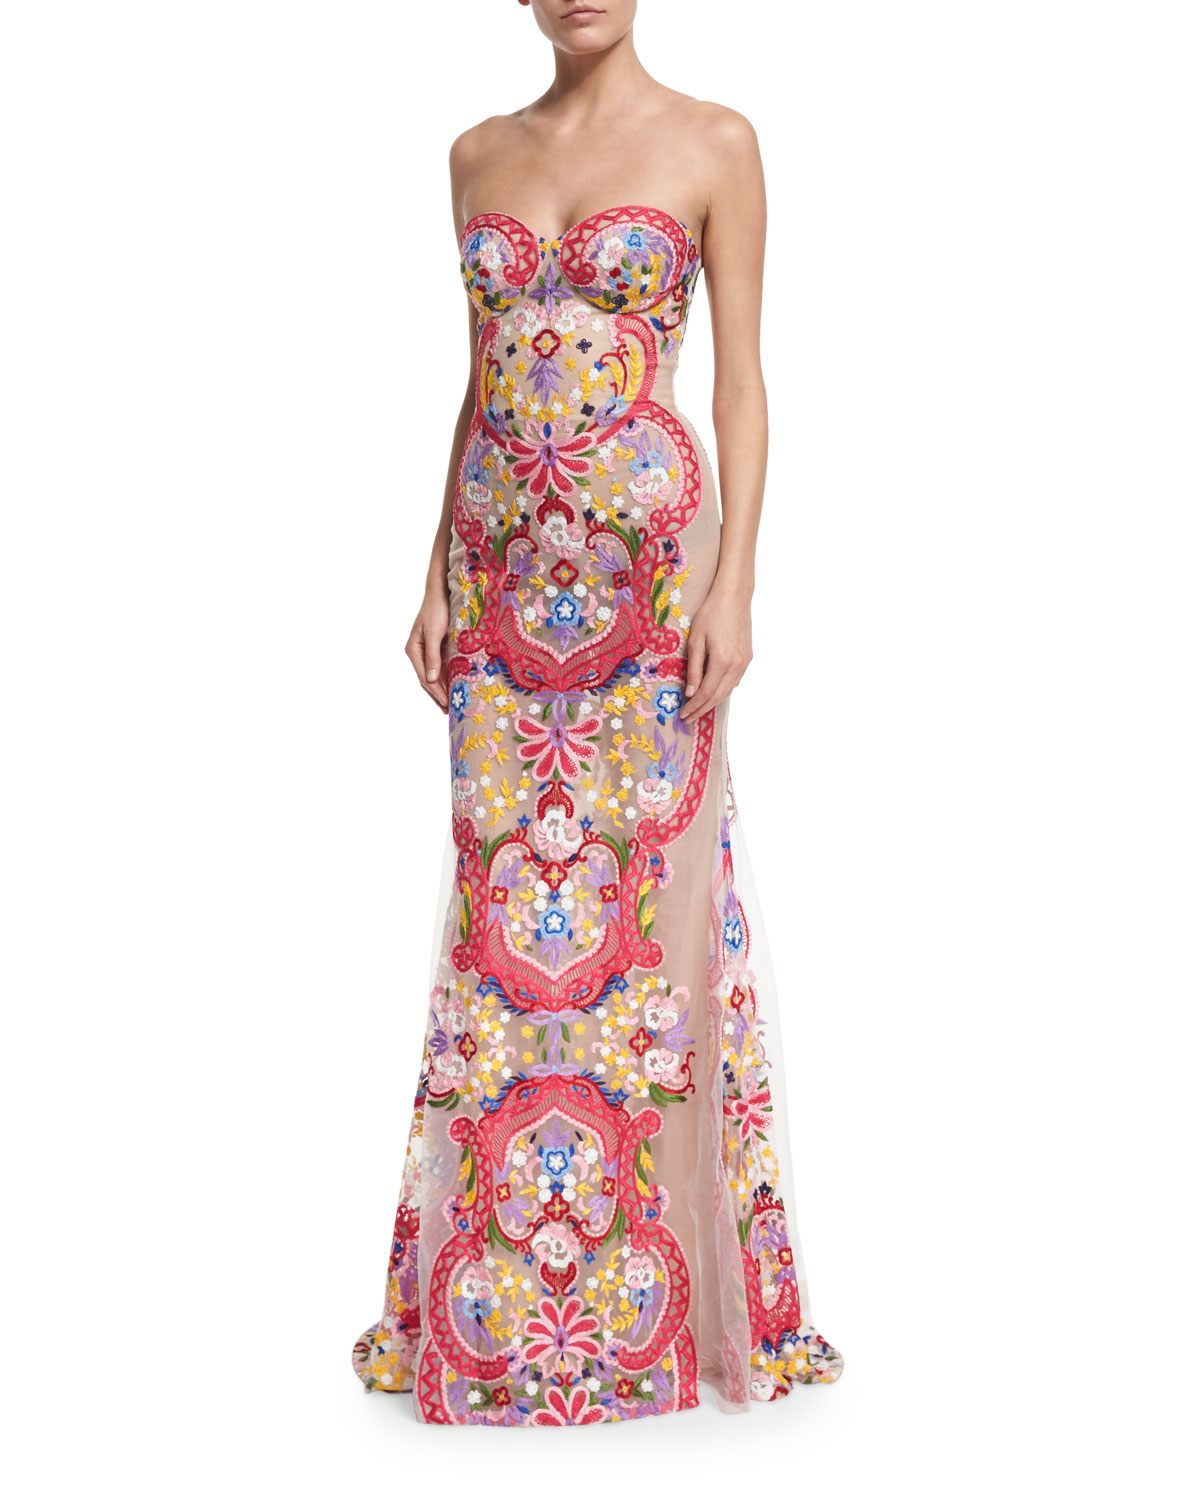 Strapless Embroidered Illusion Gown White Multi